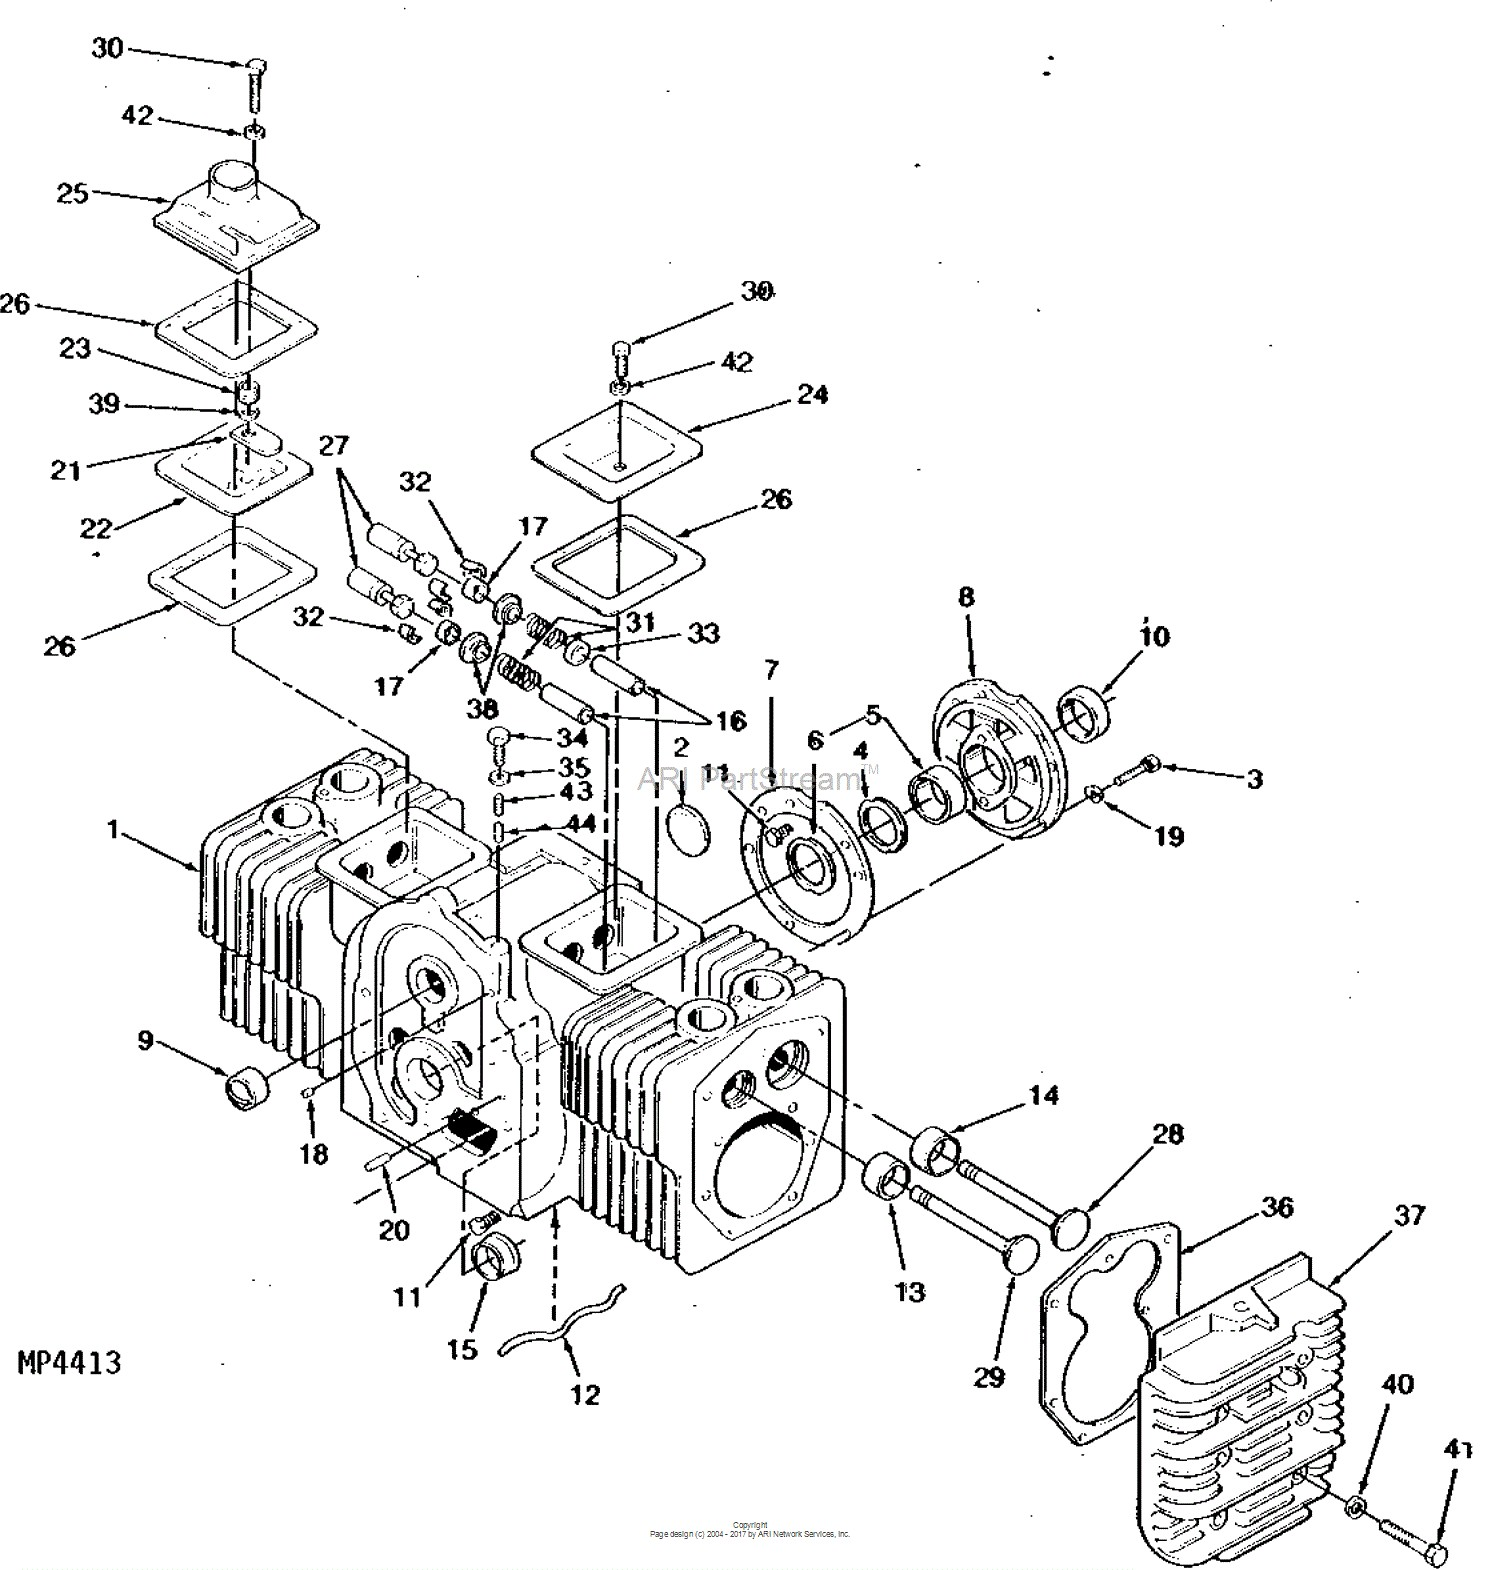 onan engine parts diagram an wiring diagram an wiring